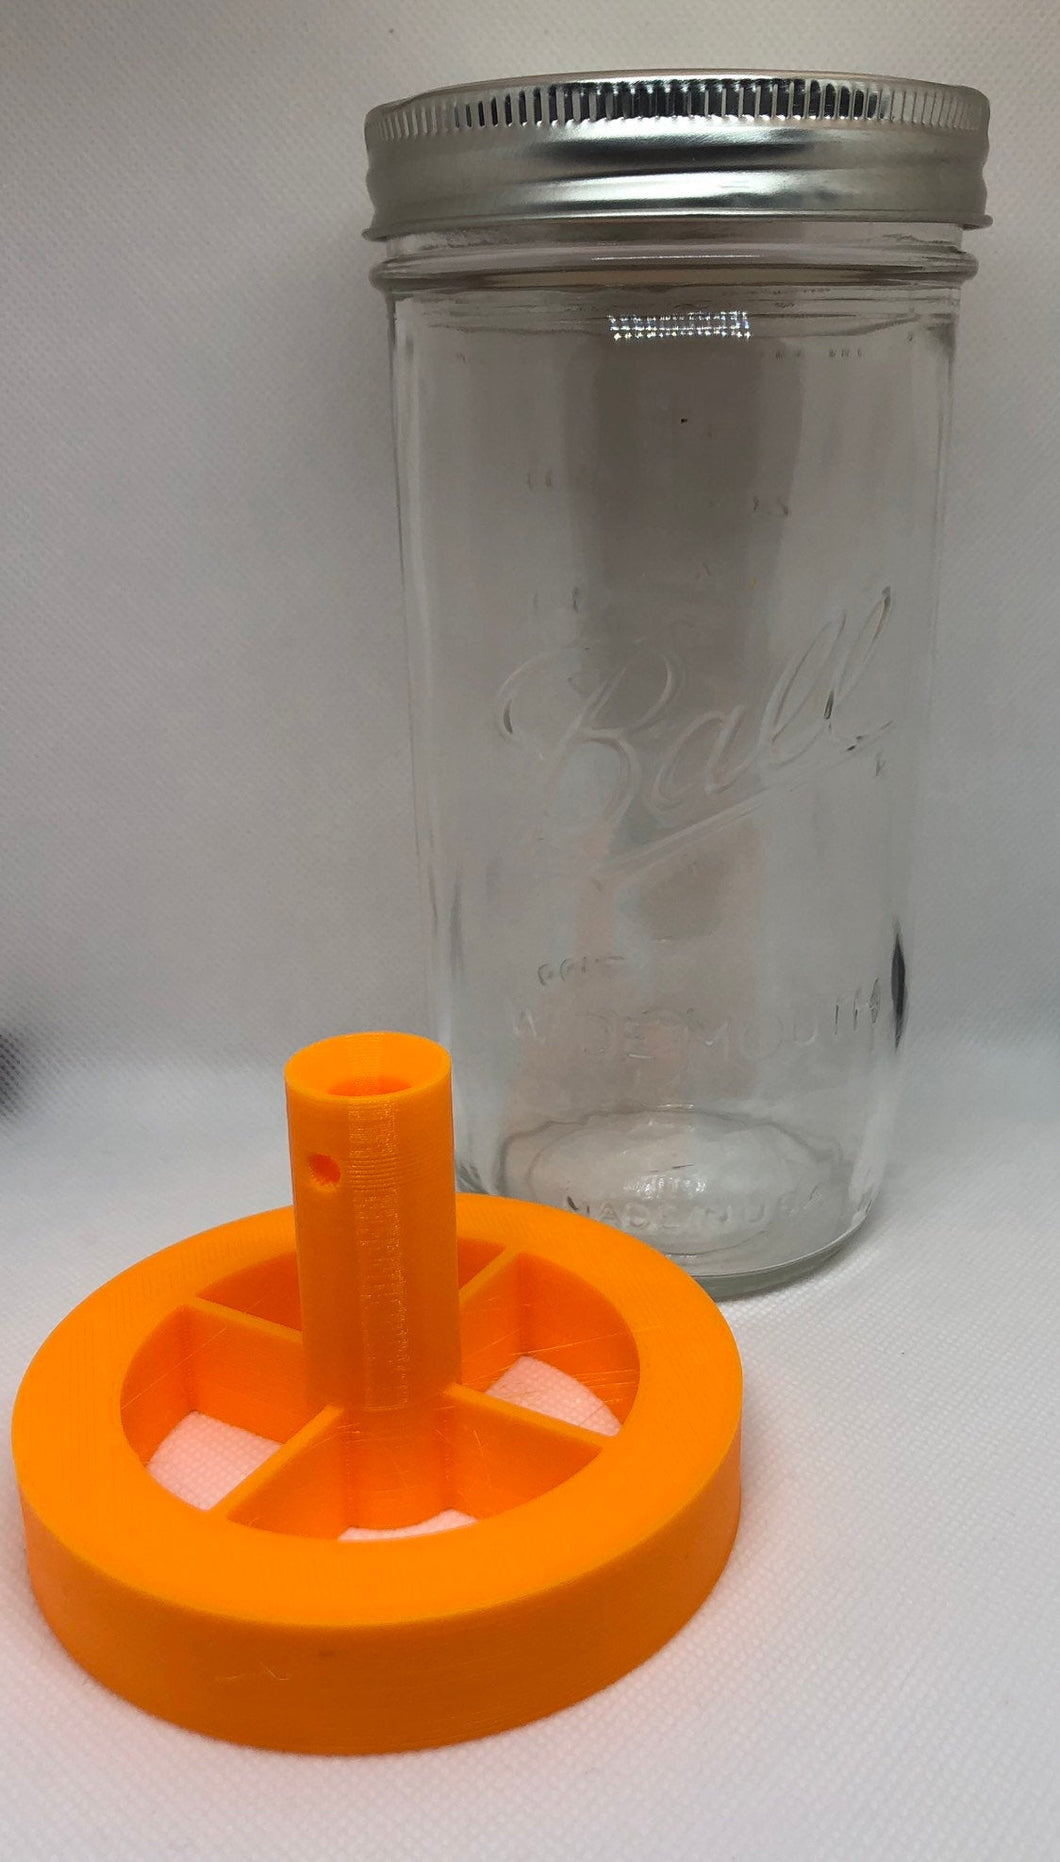 24oz (wide mouth) mason jar threaded insert